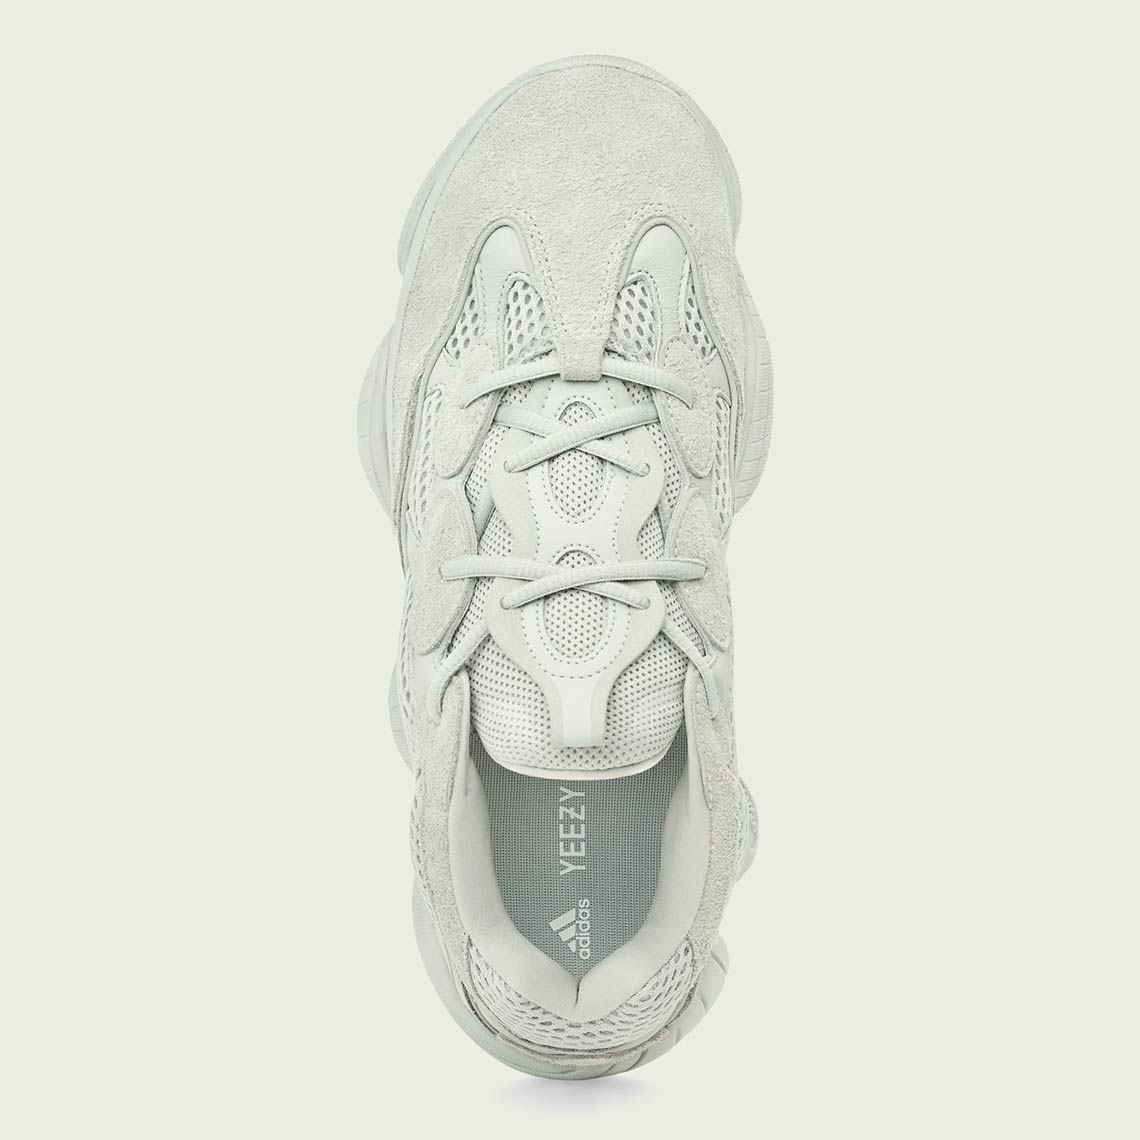 49bb98314 adidas Yeezy 500 Salt EE7287 Where To Buy